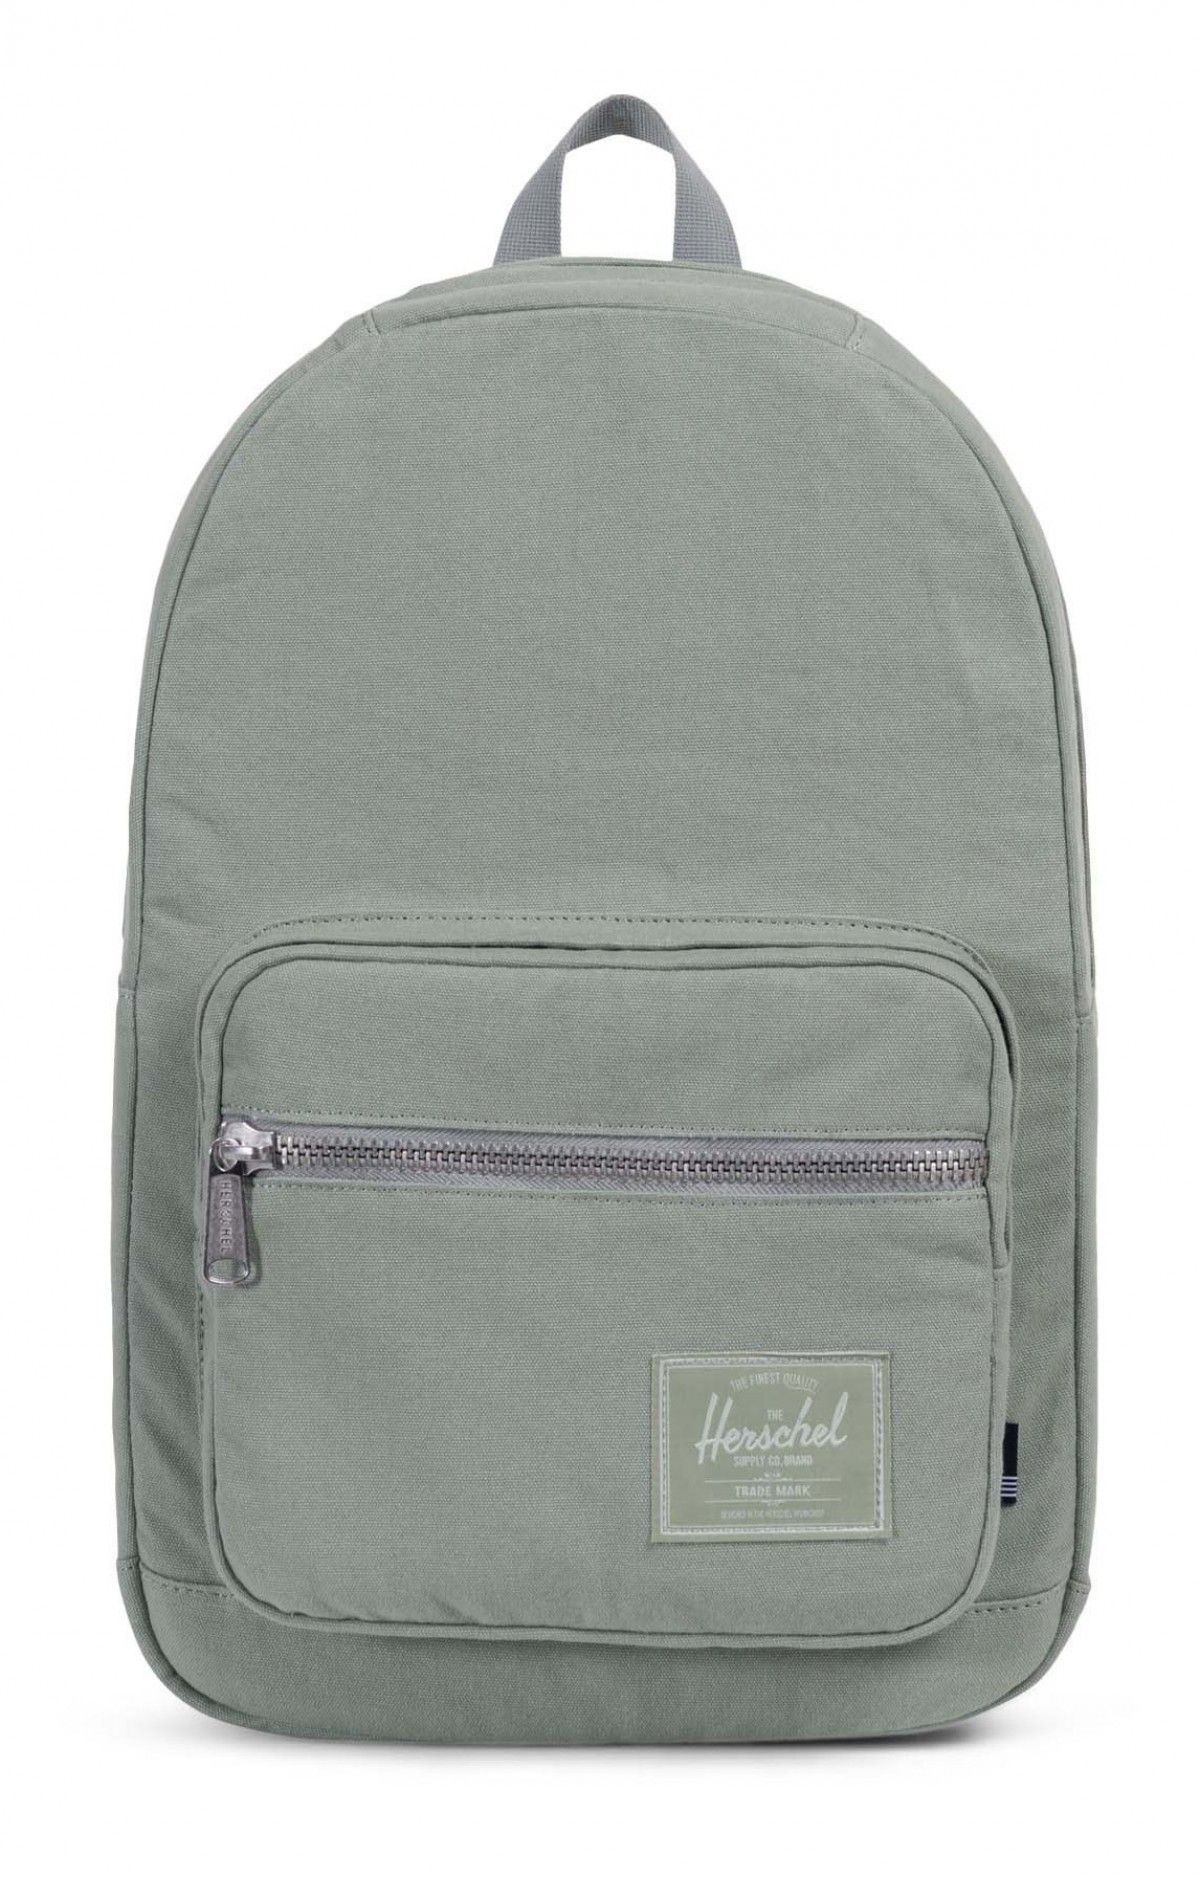 1adf729eb6 Herschel Pop Quiz Backpack Canvas Shadow